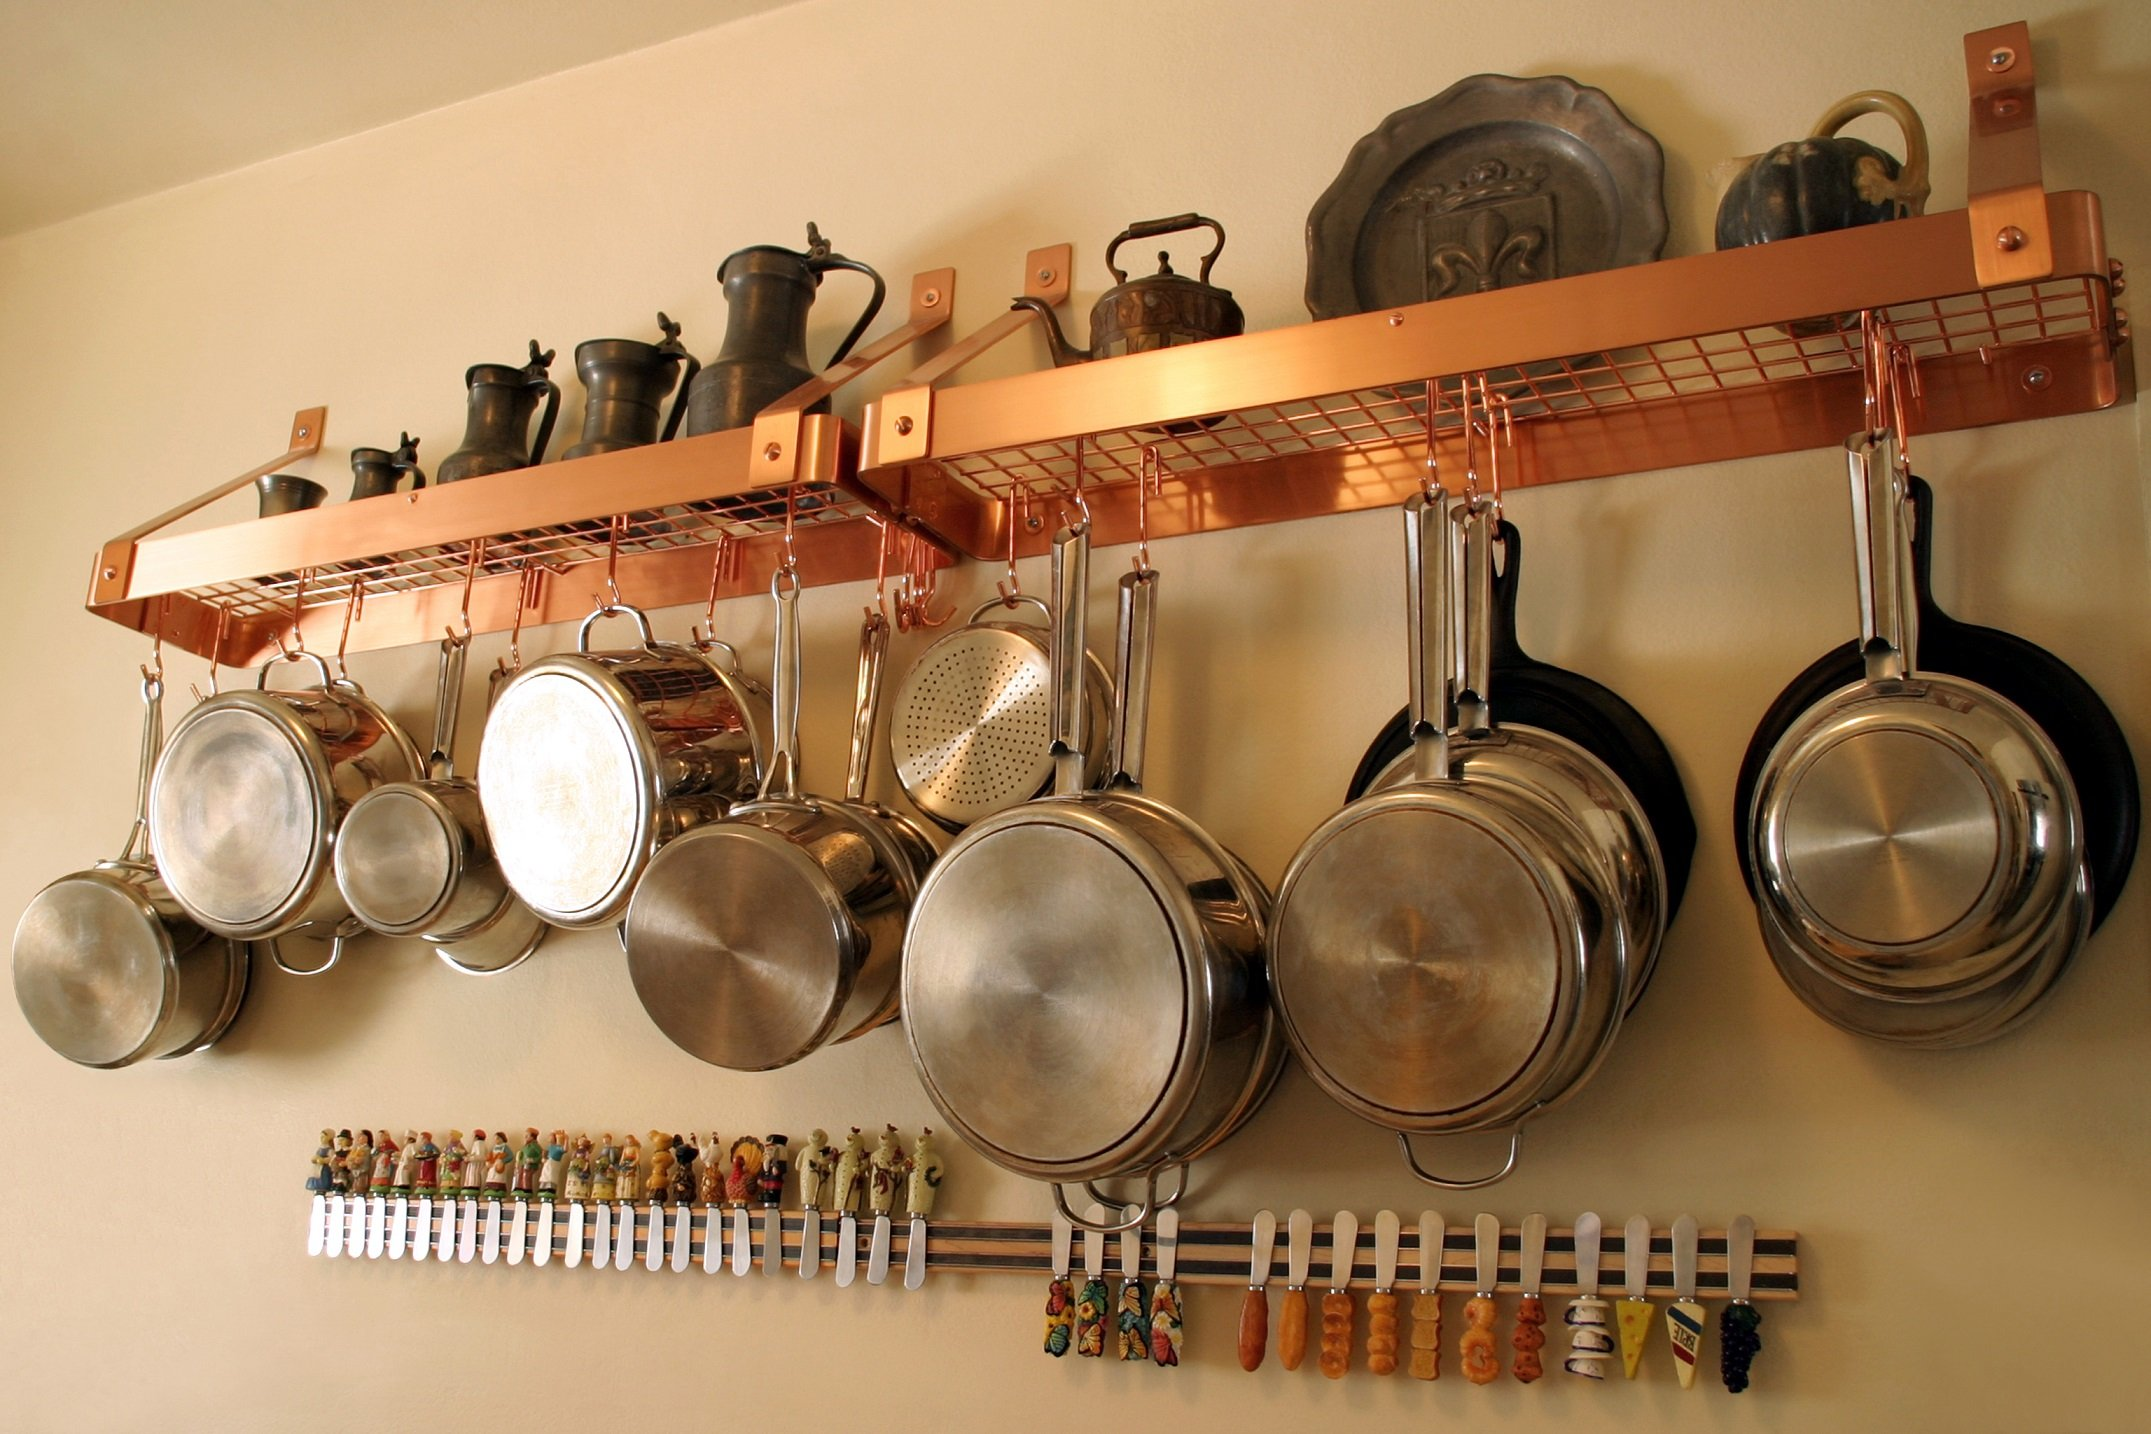 Hanging pots in kitchen